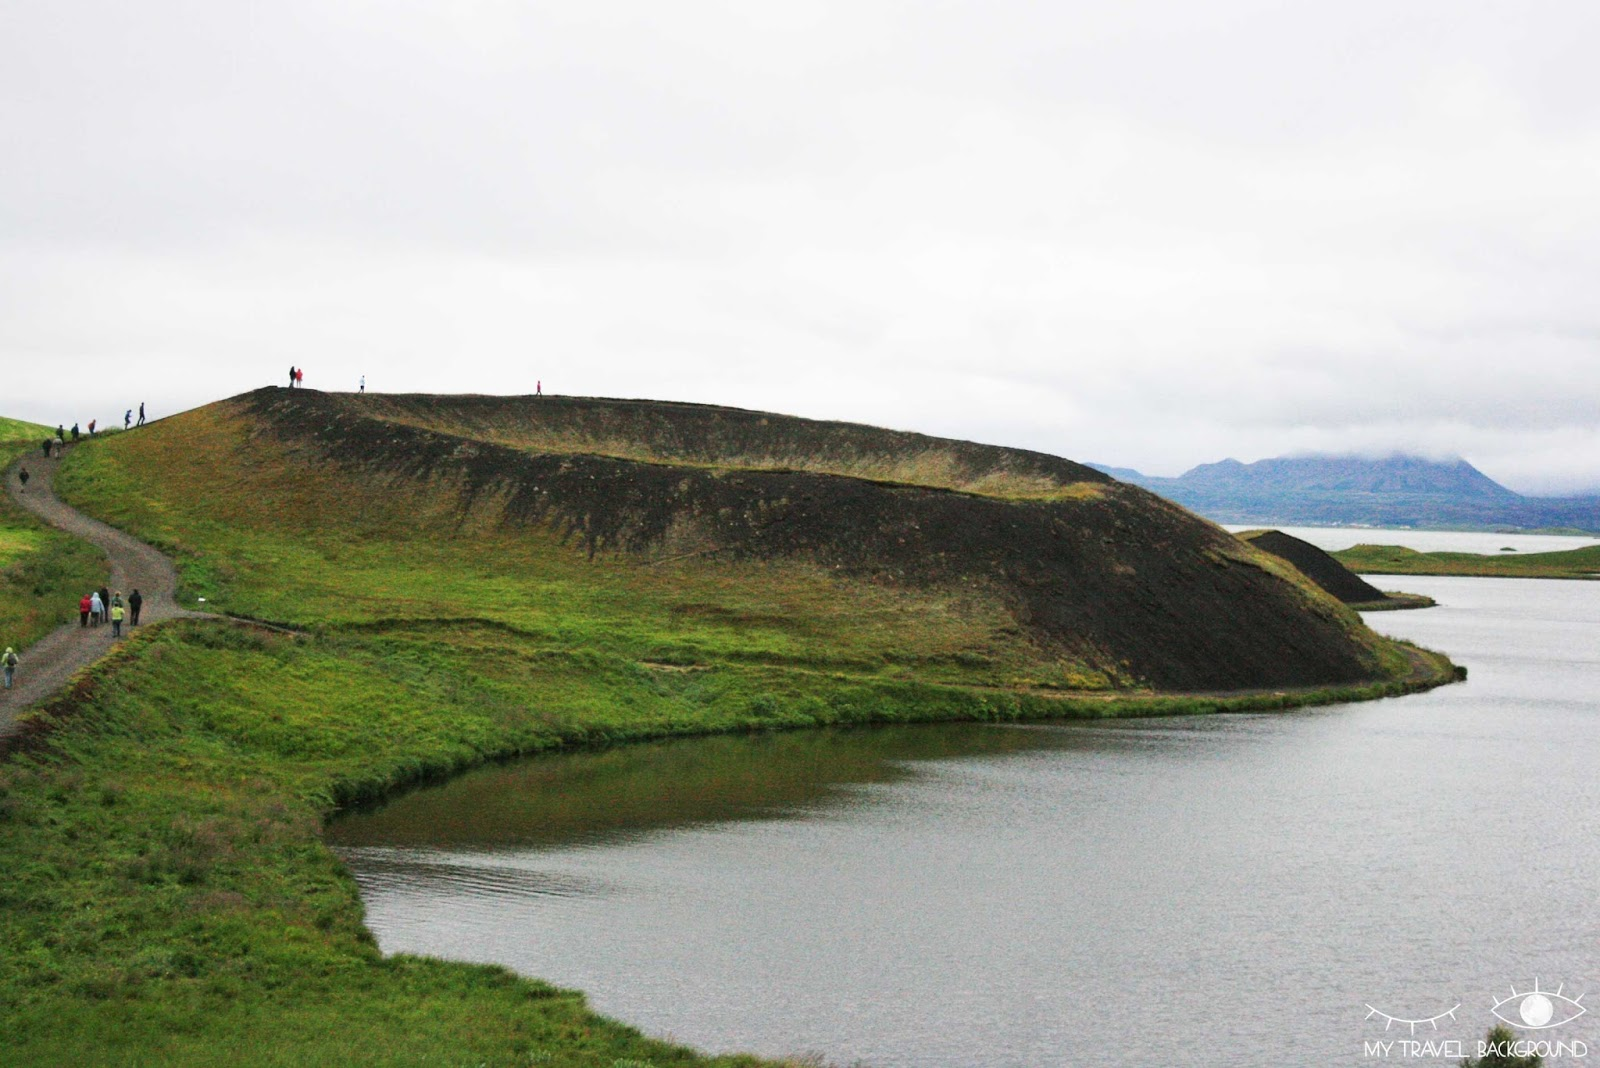 My Travel Background : 2 jours autour du lac Myvatn en Islande - Pseudo-cratères